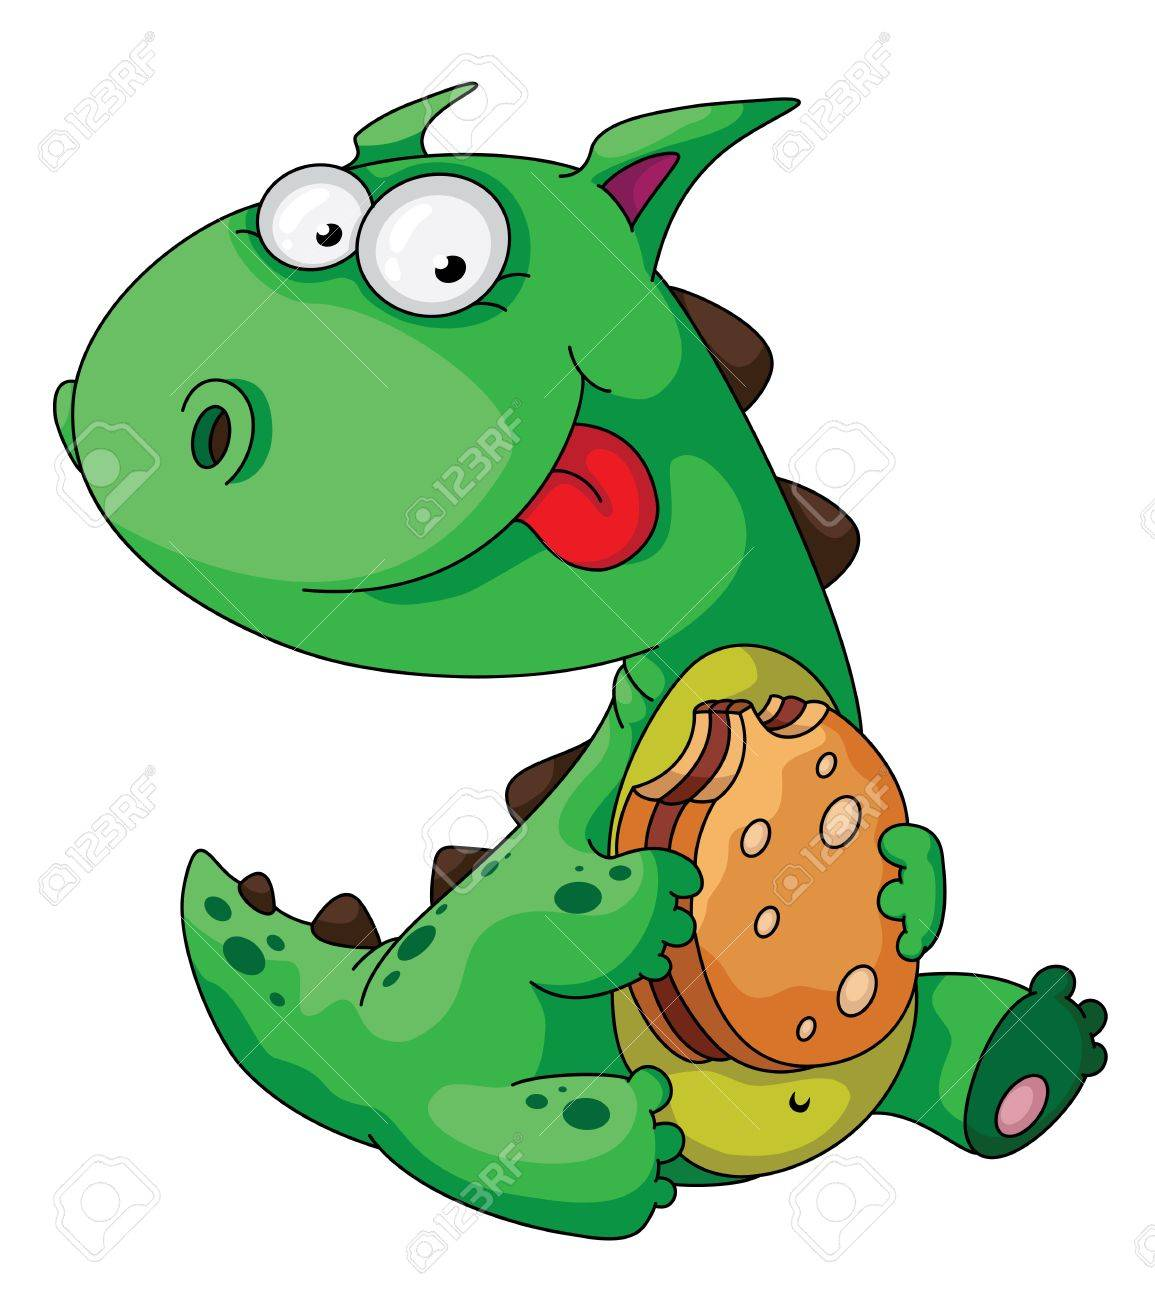 1155x1300 Cartoon Dinosaur Stock Photos. Royalty Free Cartoon Dinosaur